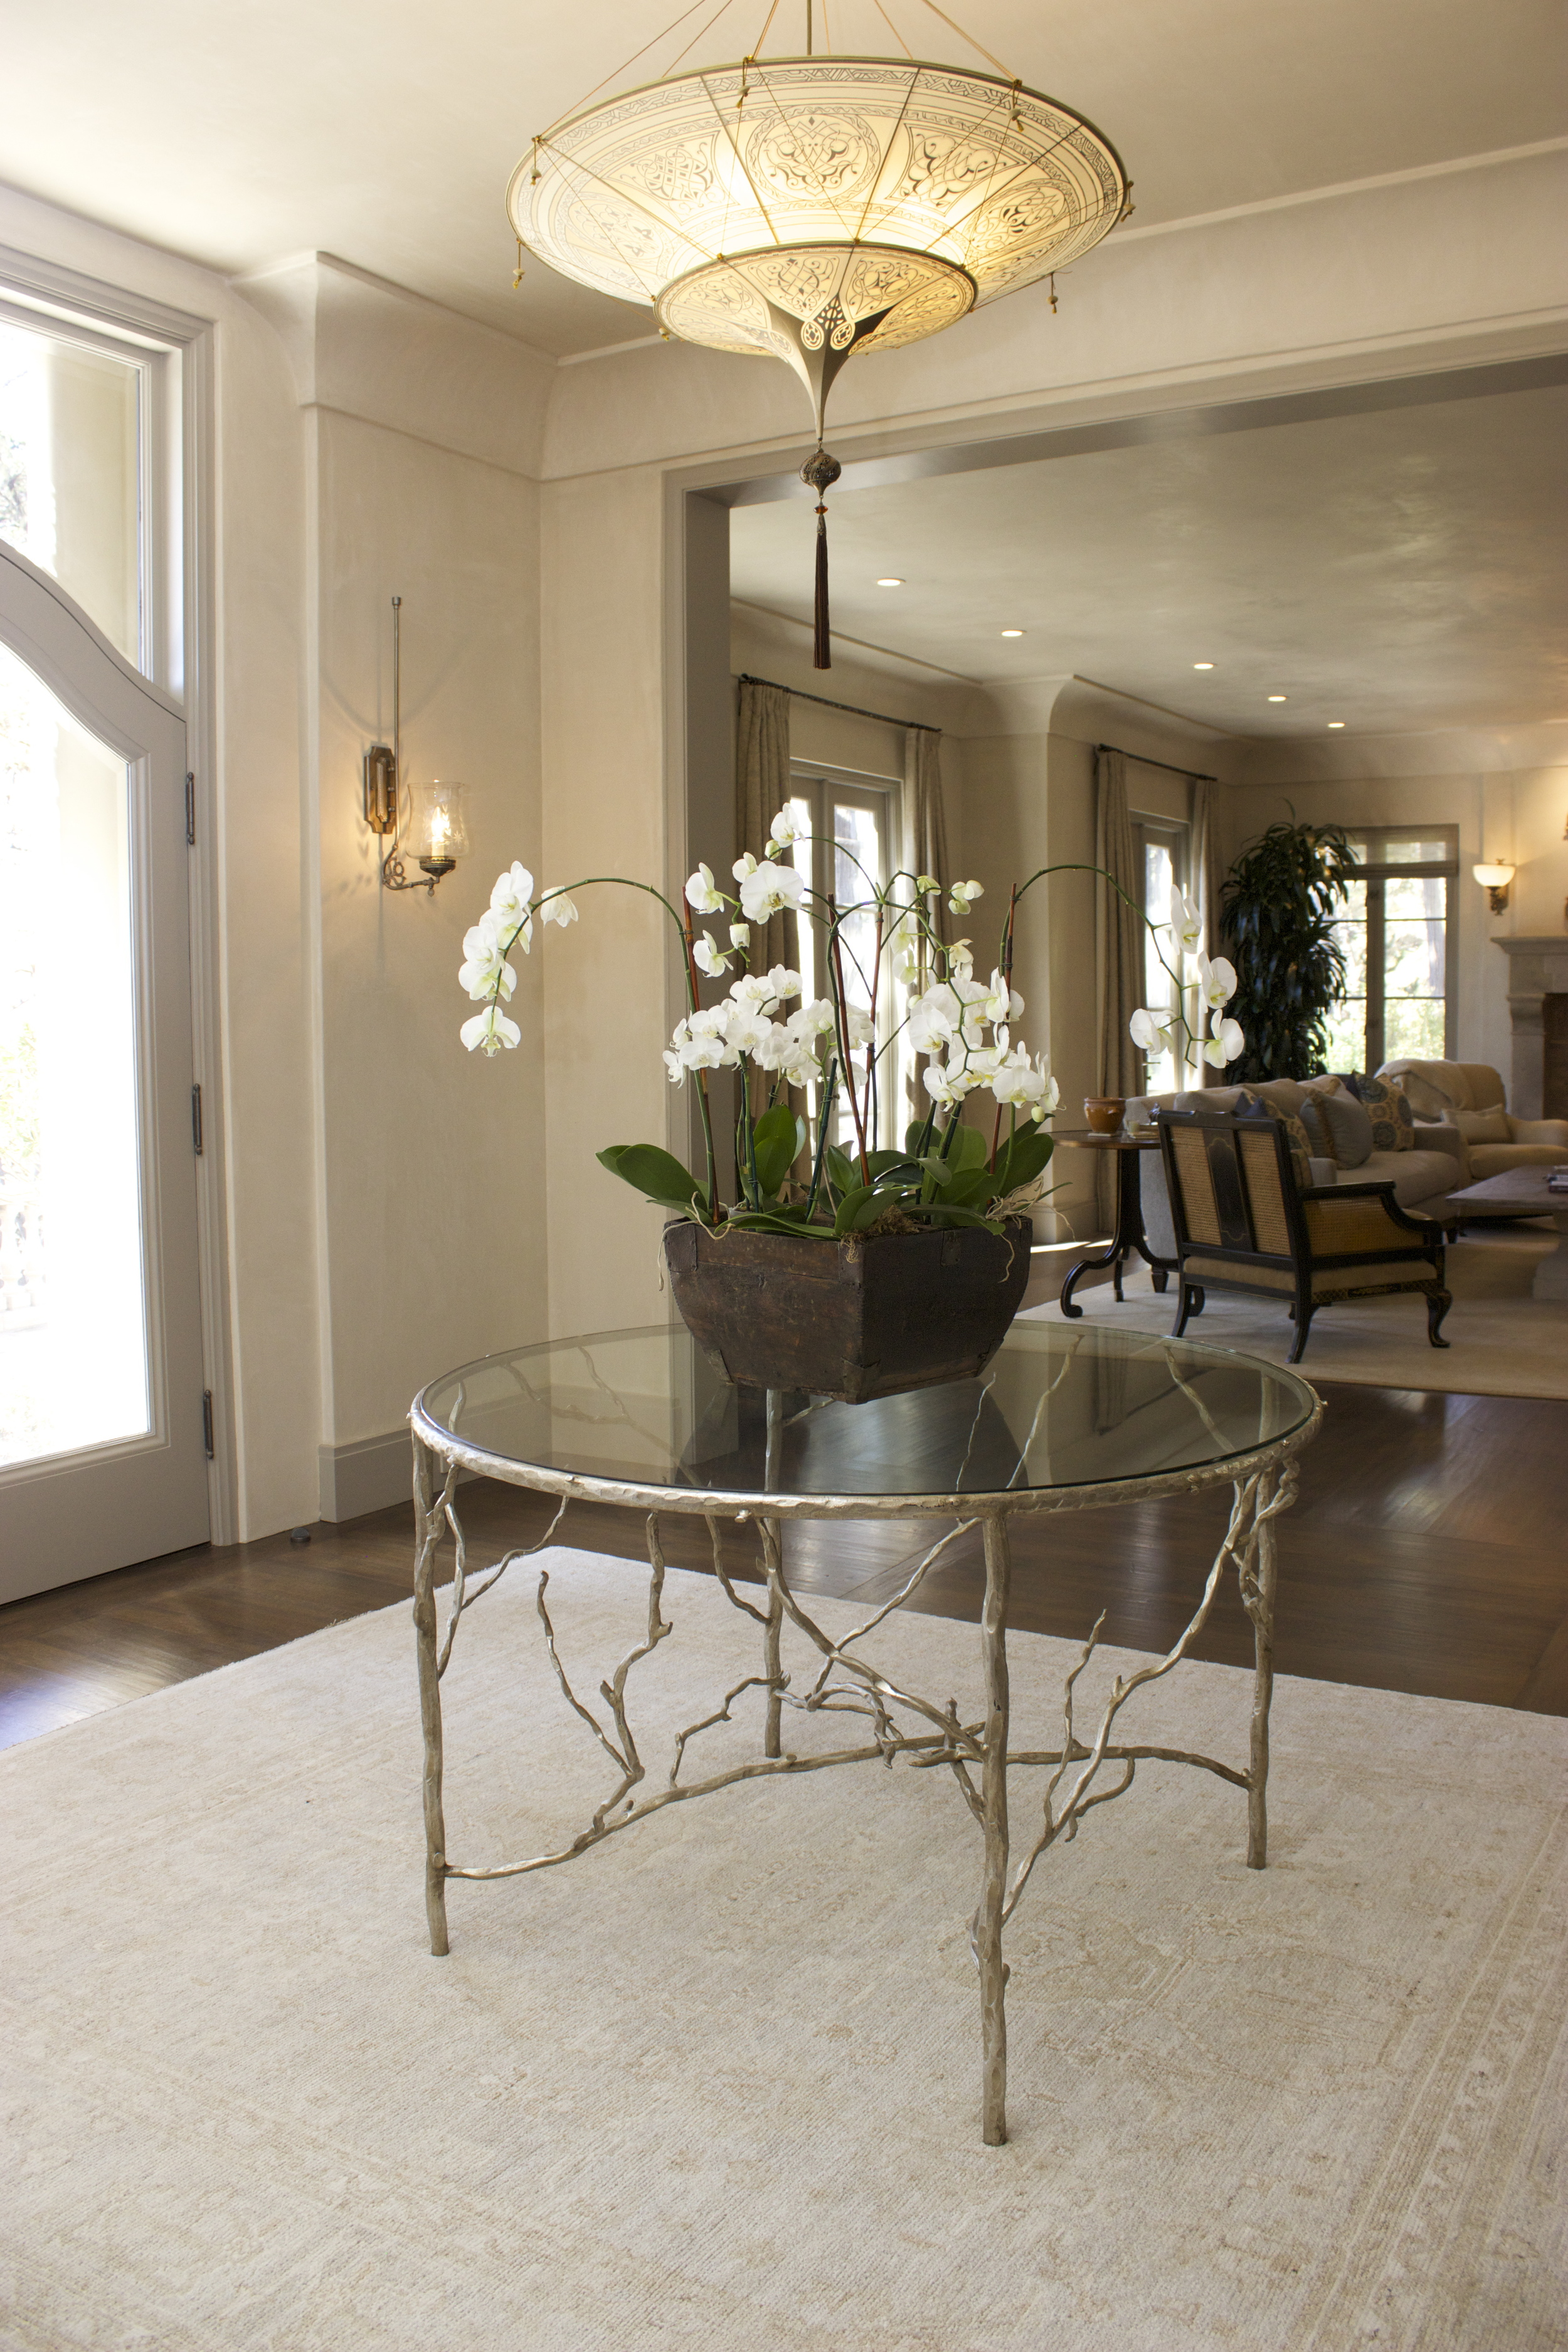 Custom metal branch table with glass top